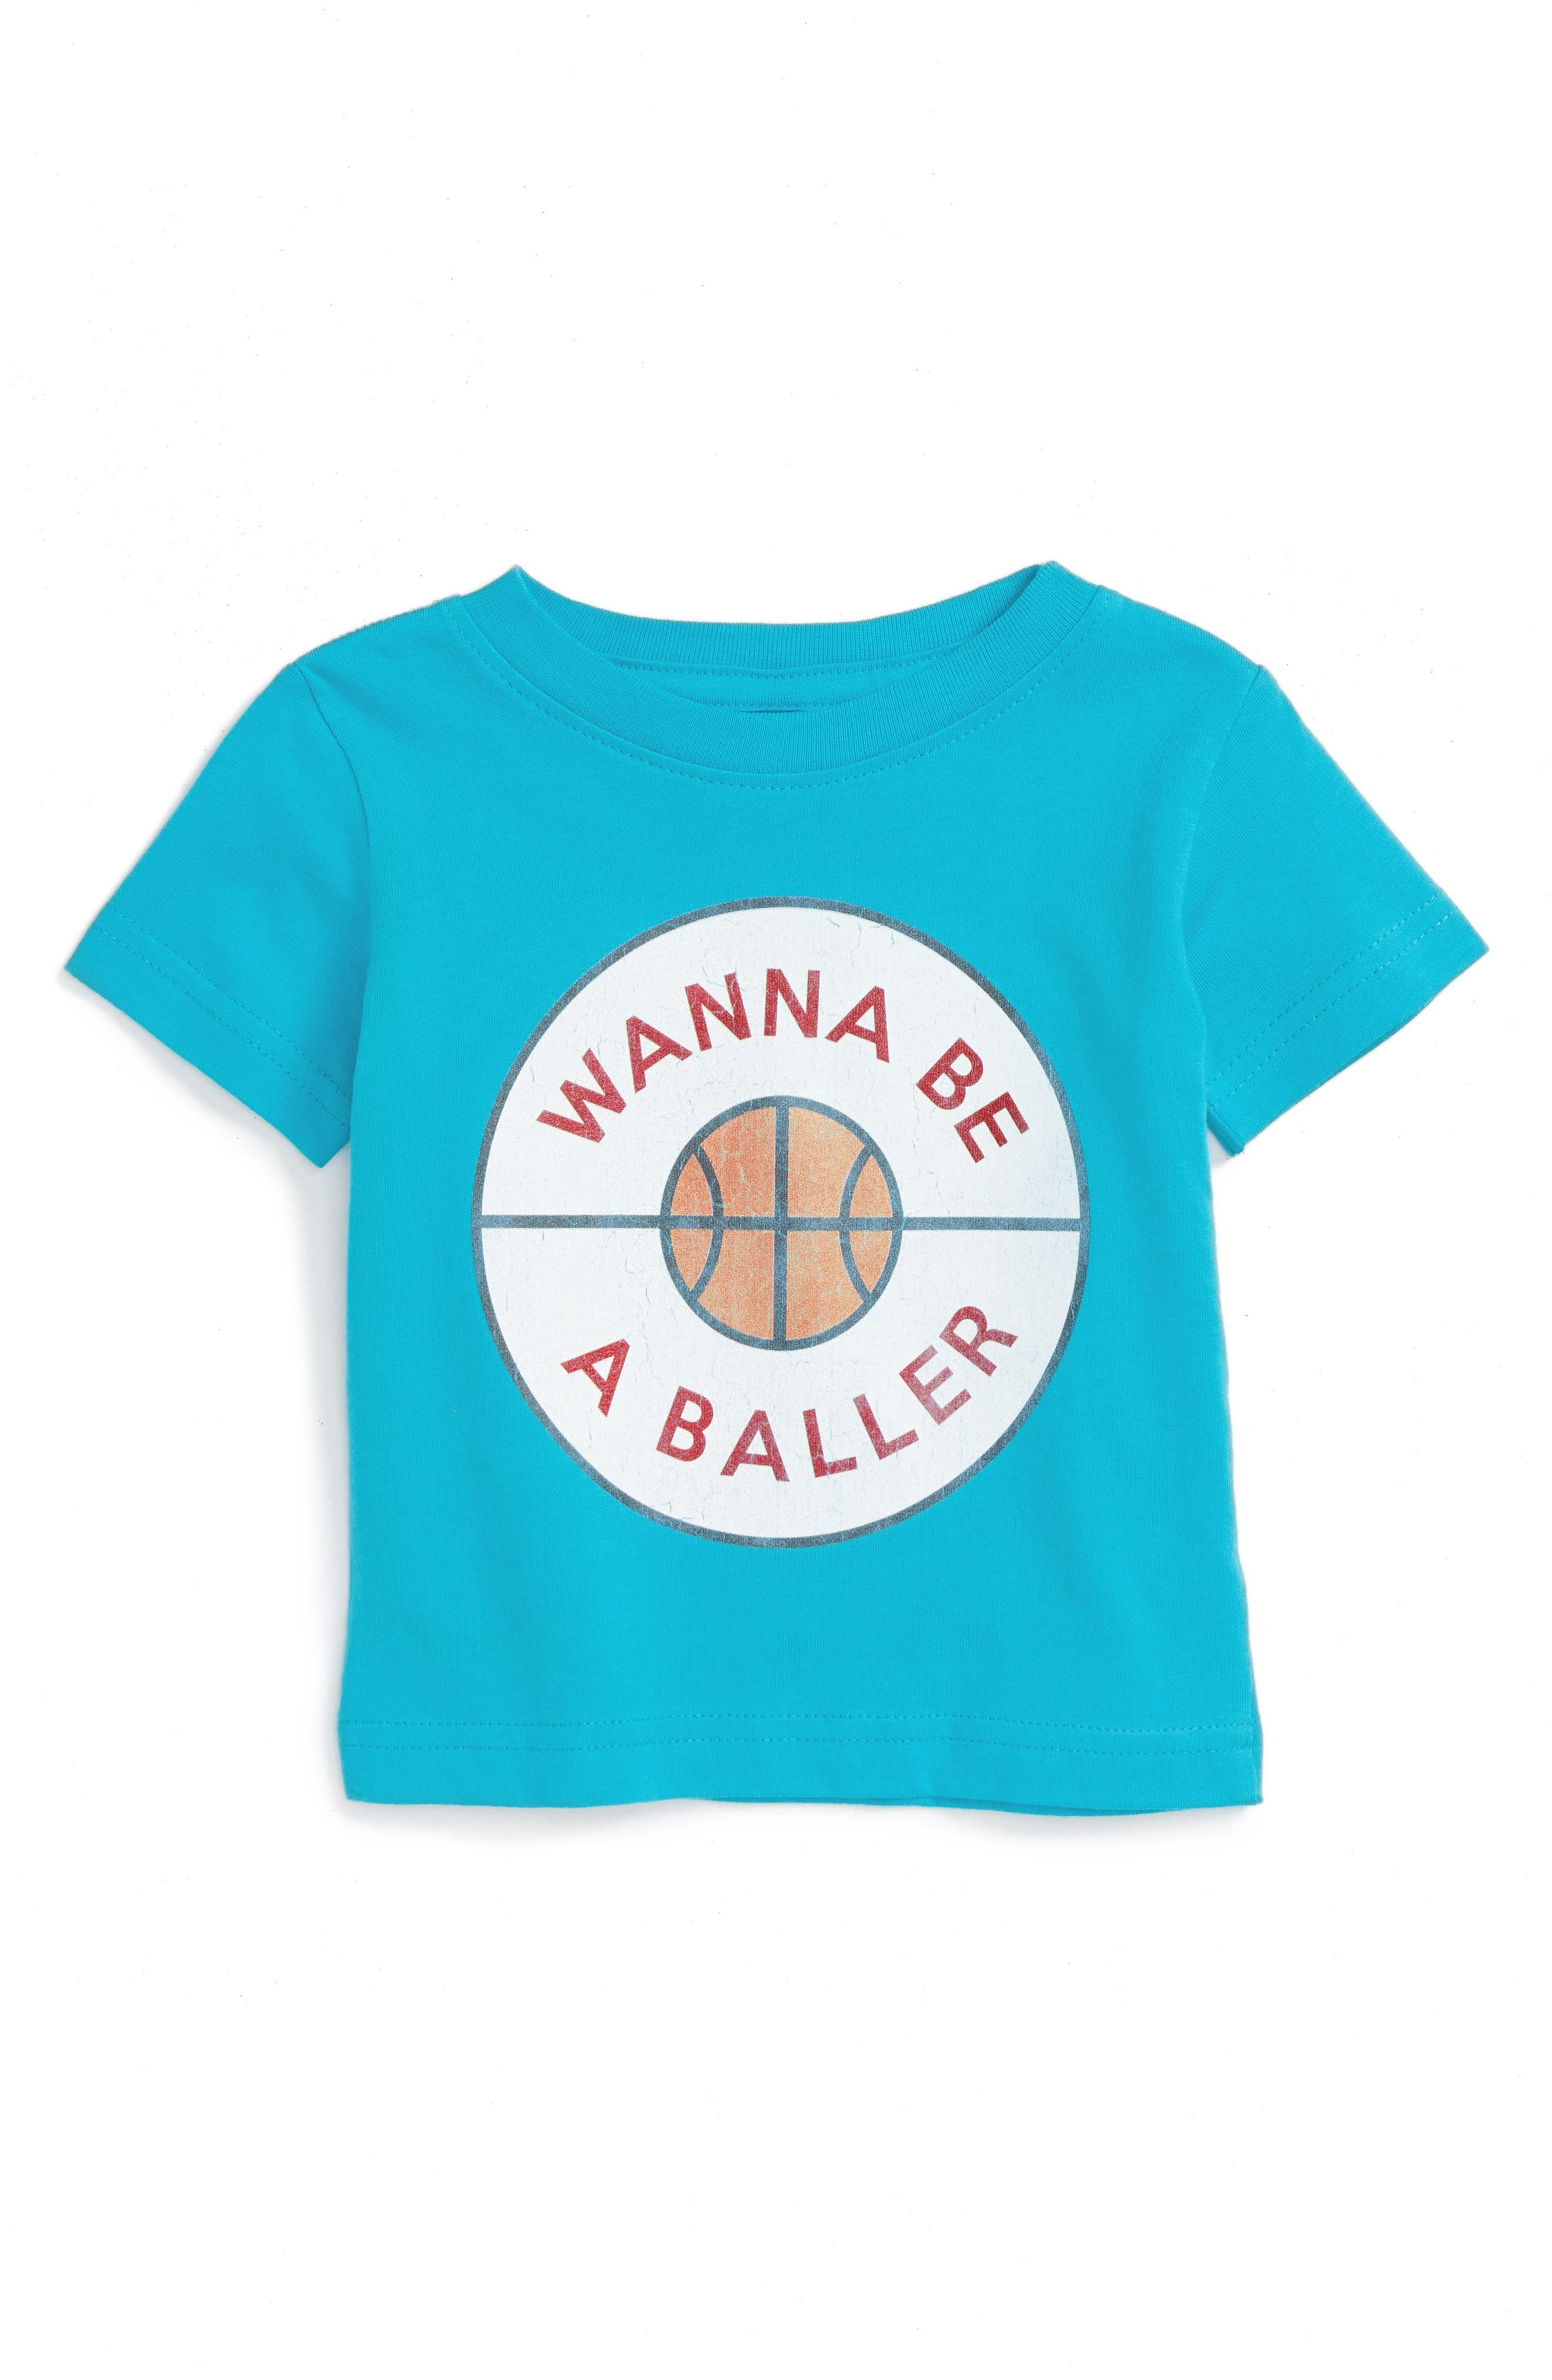 KID DANGEROUS Wanna Be a Baller Graphic T-Shirt